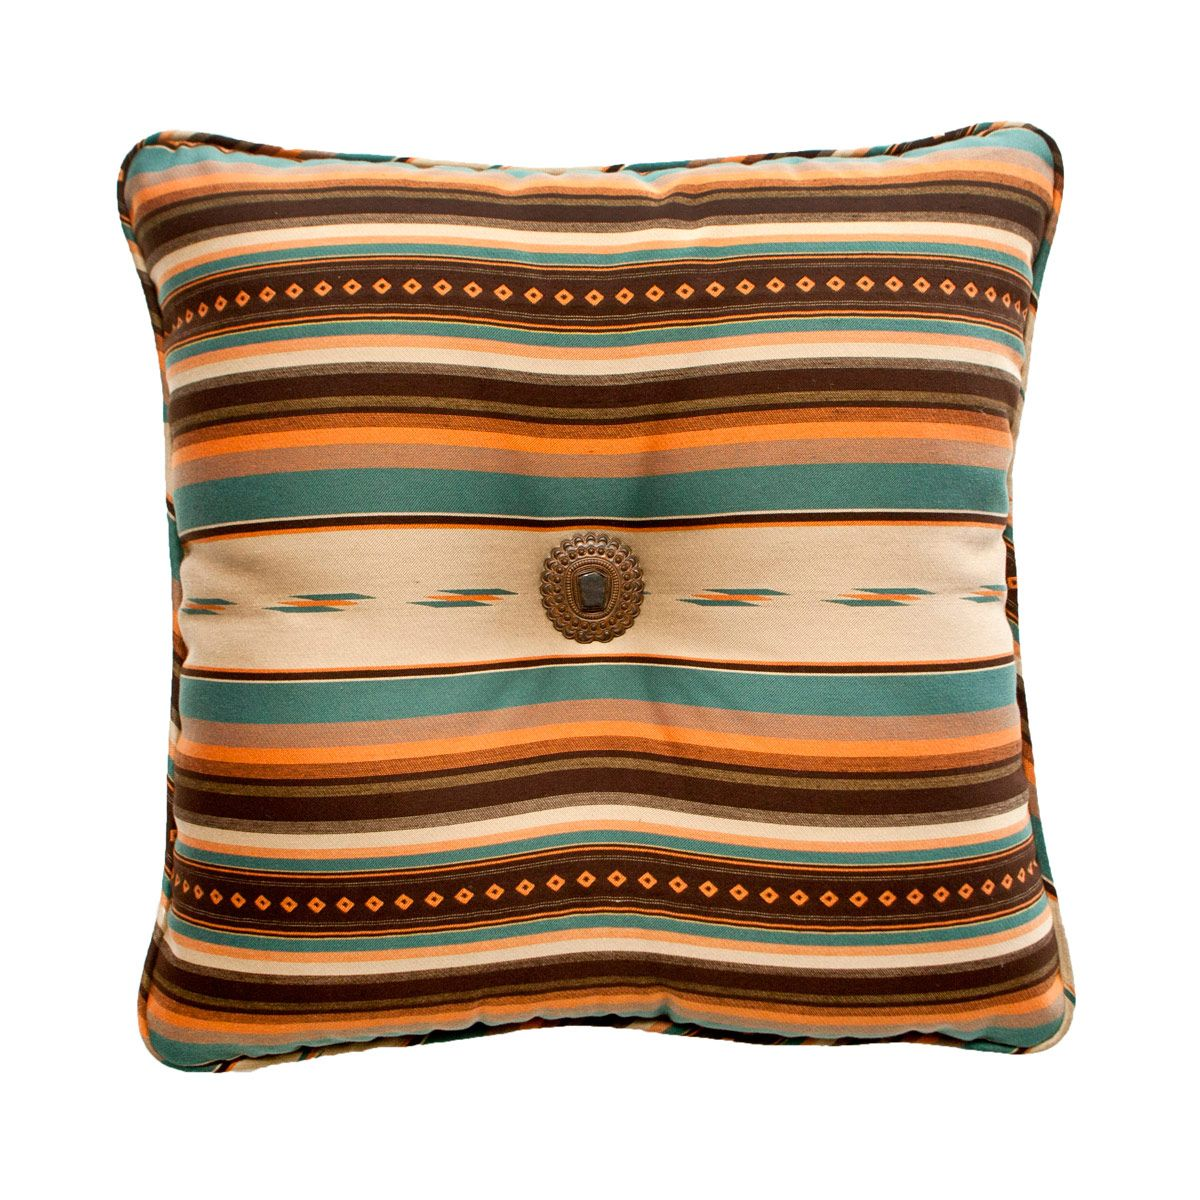 La Fonda Teal with Moon Medallion Accent Pillow Pillows